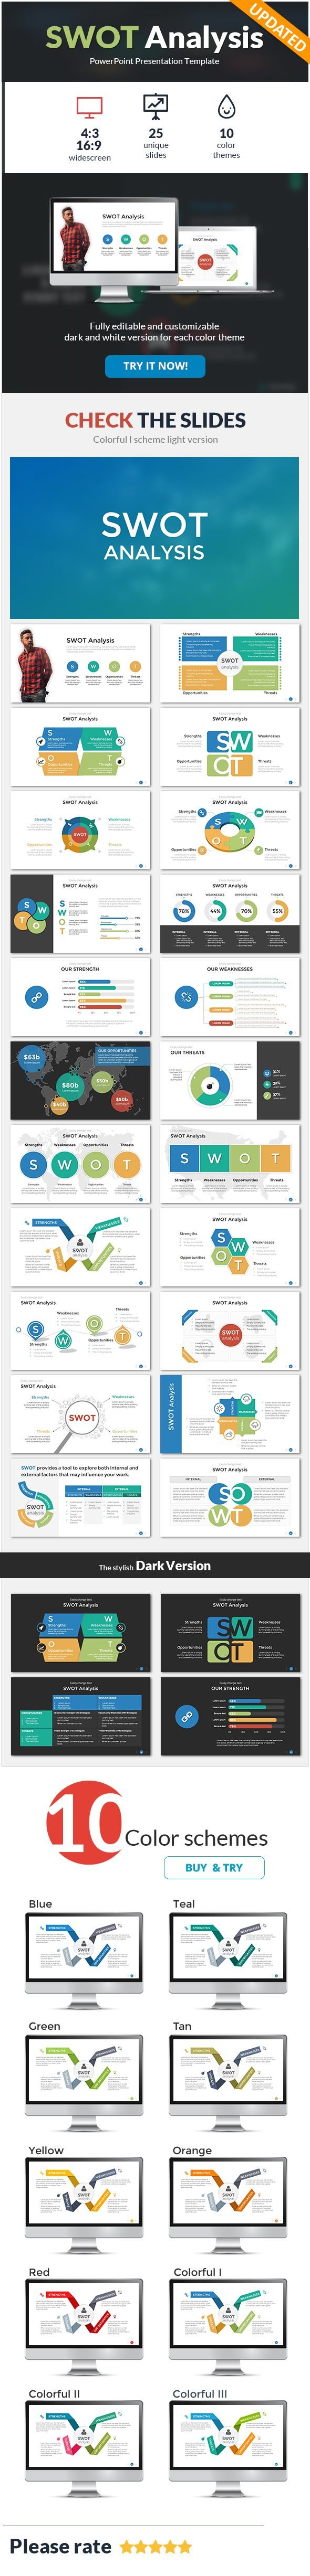 SWOT Analysis PowerPoint Template - #PowerPoint Templates Presentation #Templates Download here:  https://graphicriver.net/item/swot-analysis-powerpoint-template/15921175?ref=alena994